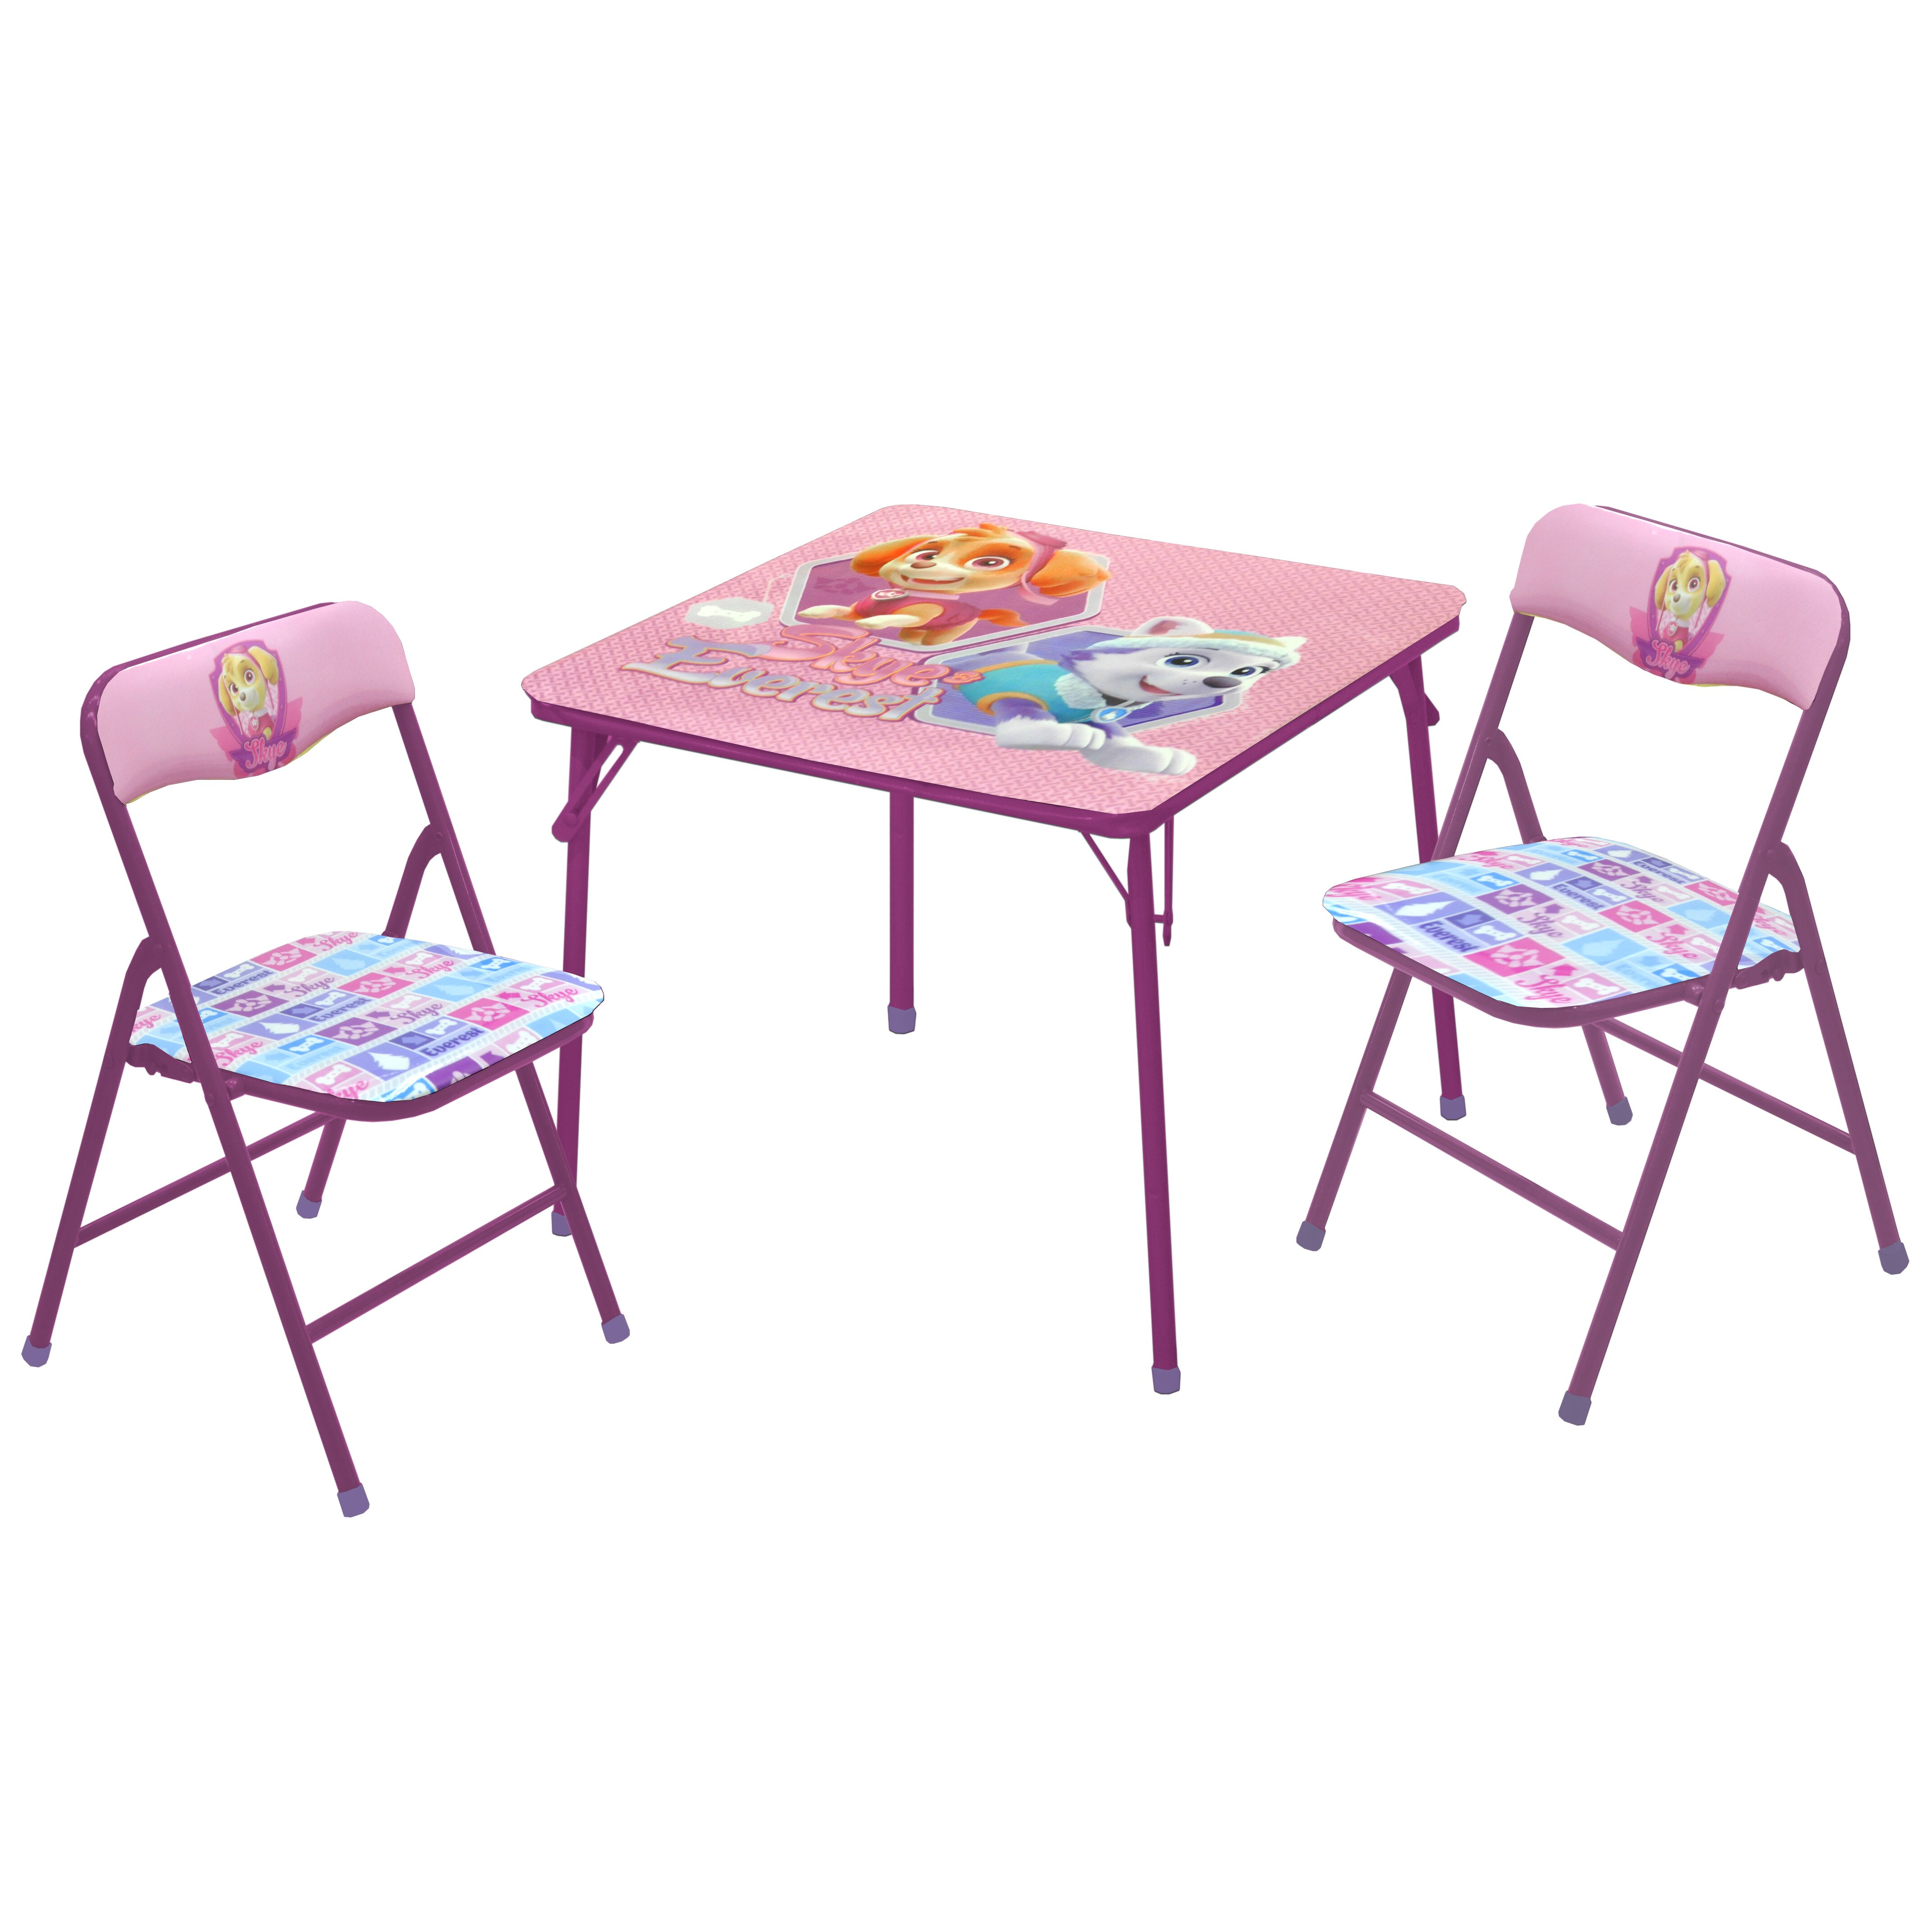 Idea Nuova Nickelodeon Paw Patrol Skye and Everest Kids  : Idea Nuova Nickelodeon Paw Patrol Skye and Everest Kids 3 Piece Table and Chair Set from www.wayfair.com size 4288 x 4288 jpeg 998kB